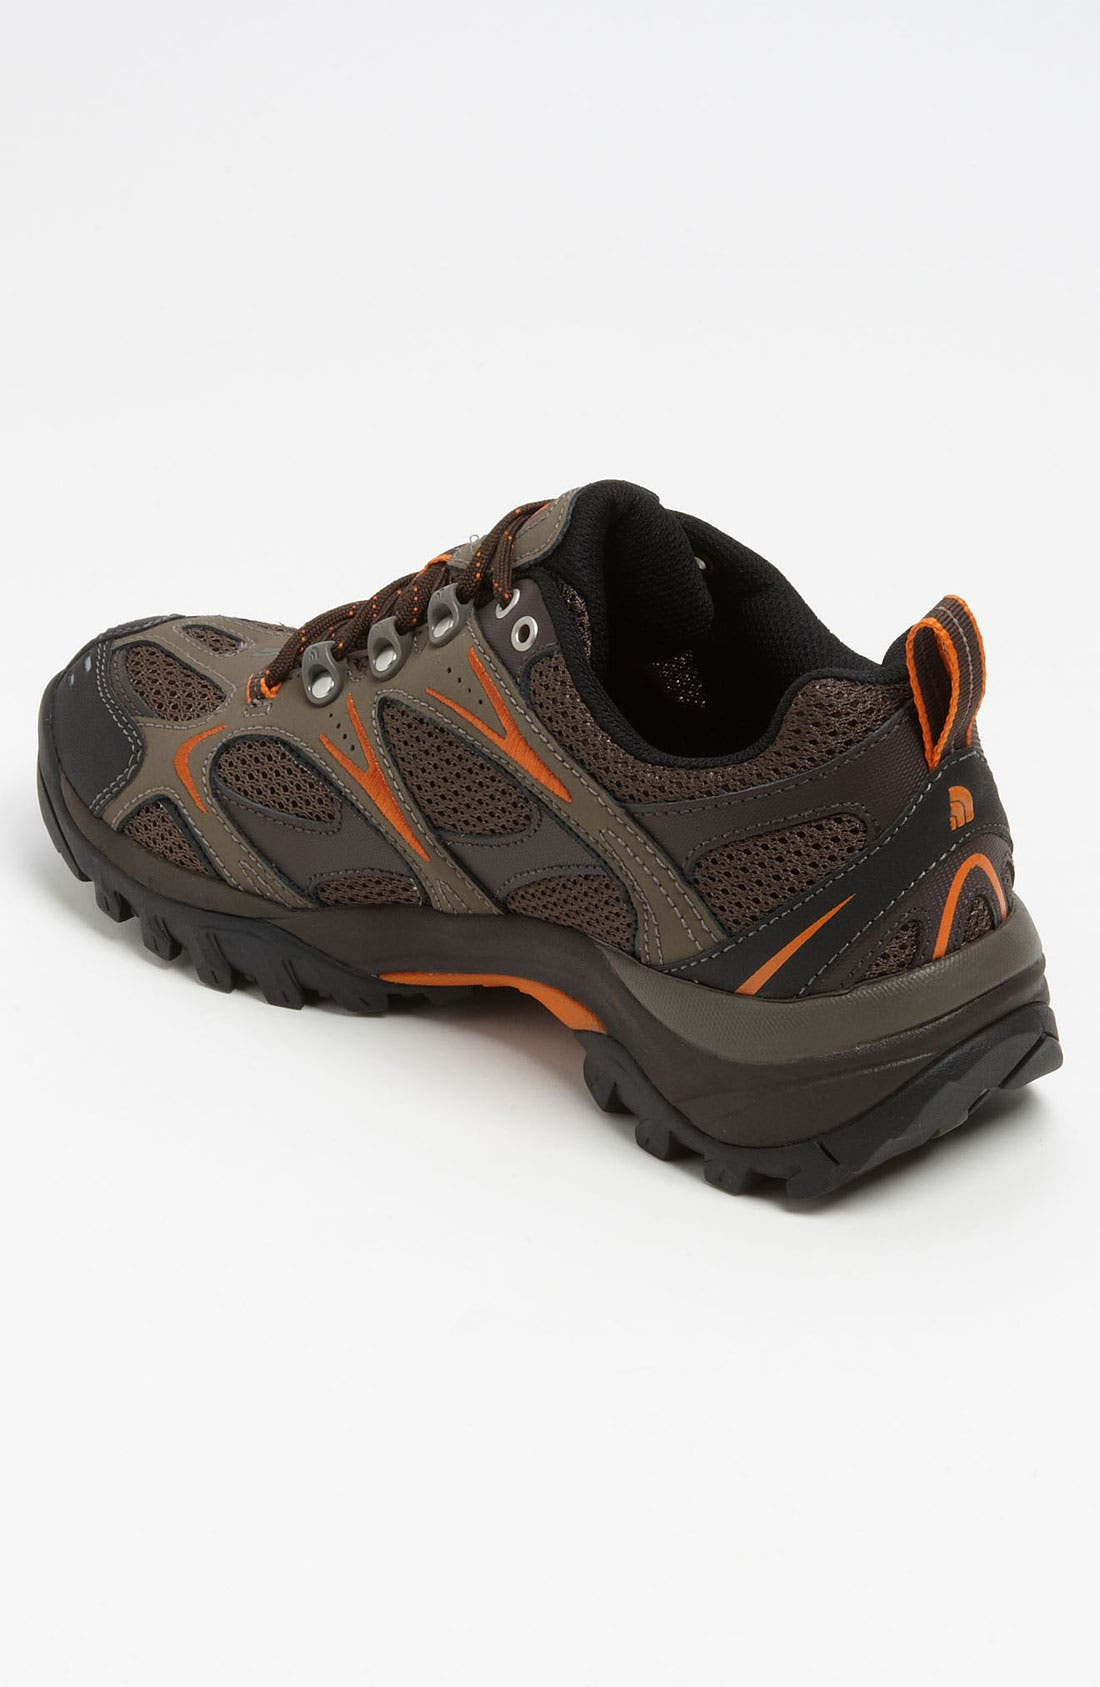 Alternate Image 2  - The North Face 'Hedgehog III' Hiking Shoe (Men)